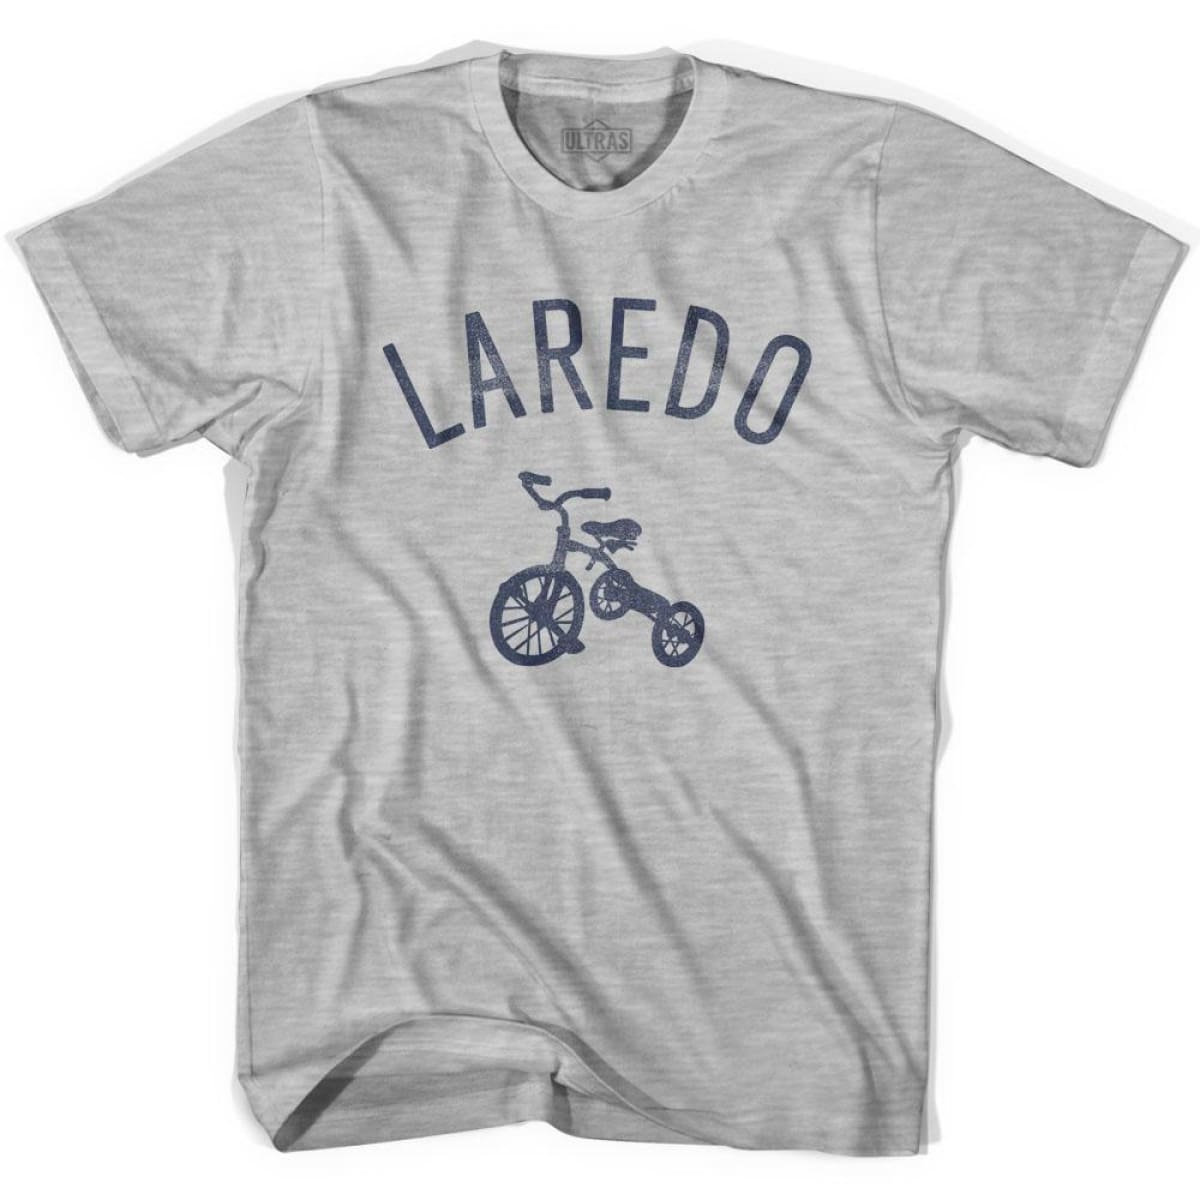 Laredo City Tricycle Youth Cotton T-shirt - Tricycle City